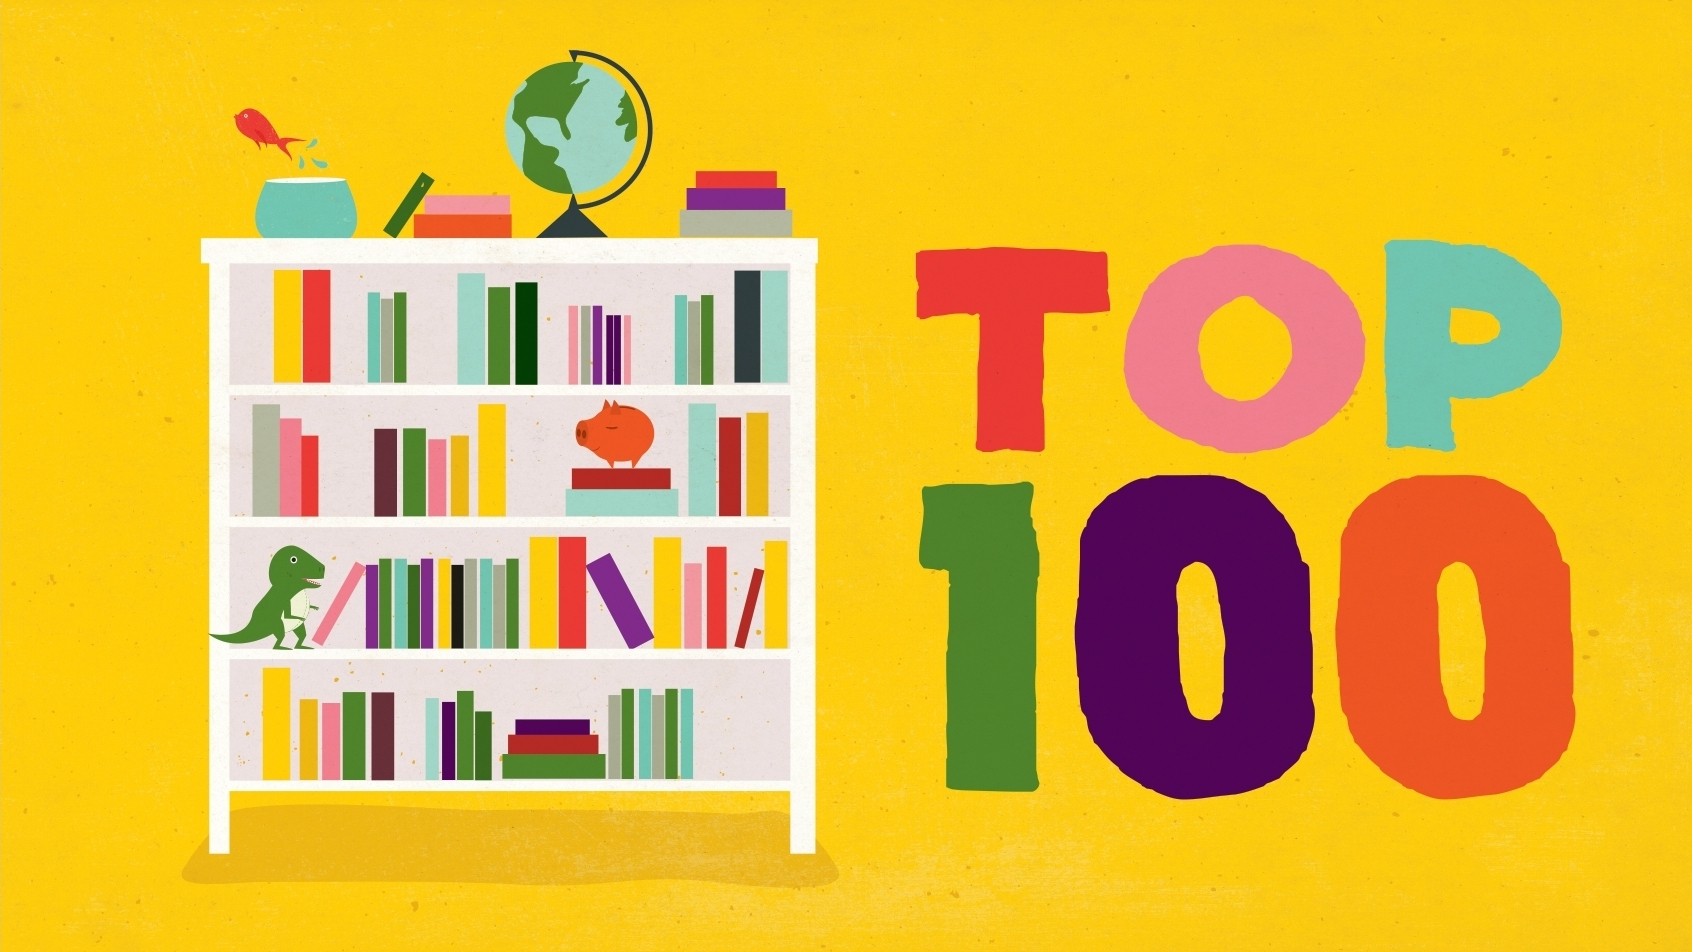 image regarding Great American Read Printable List referred to as The Final Backseat Bookshelf: 100 Should really-Reads For Youngsters 9